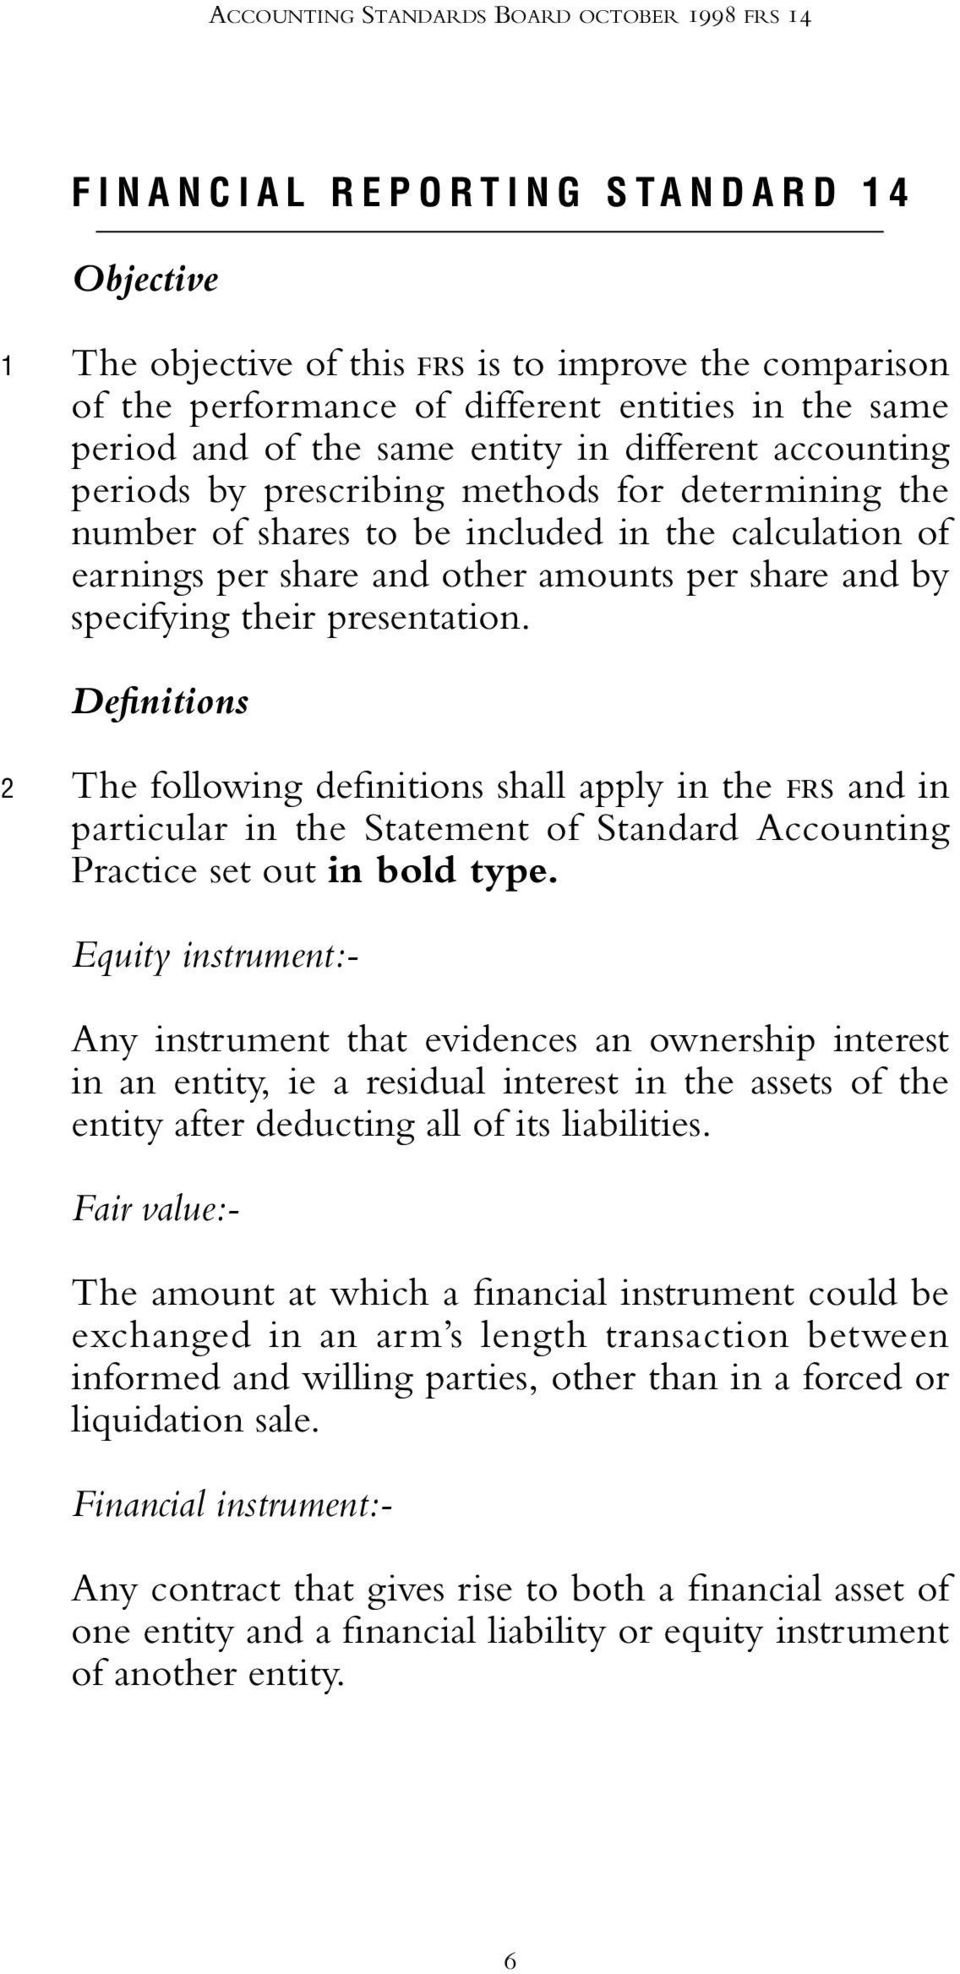 share and by specifying their presentation. Definitions 2 The following definitions shall apply in the FRS and in particular in the Statement of Standard Accounting Practice set out in bold type.